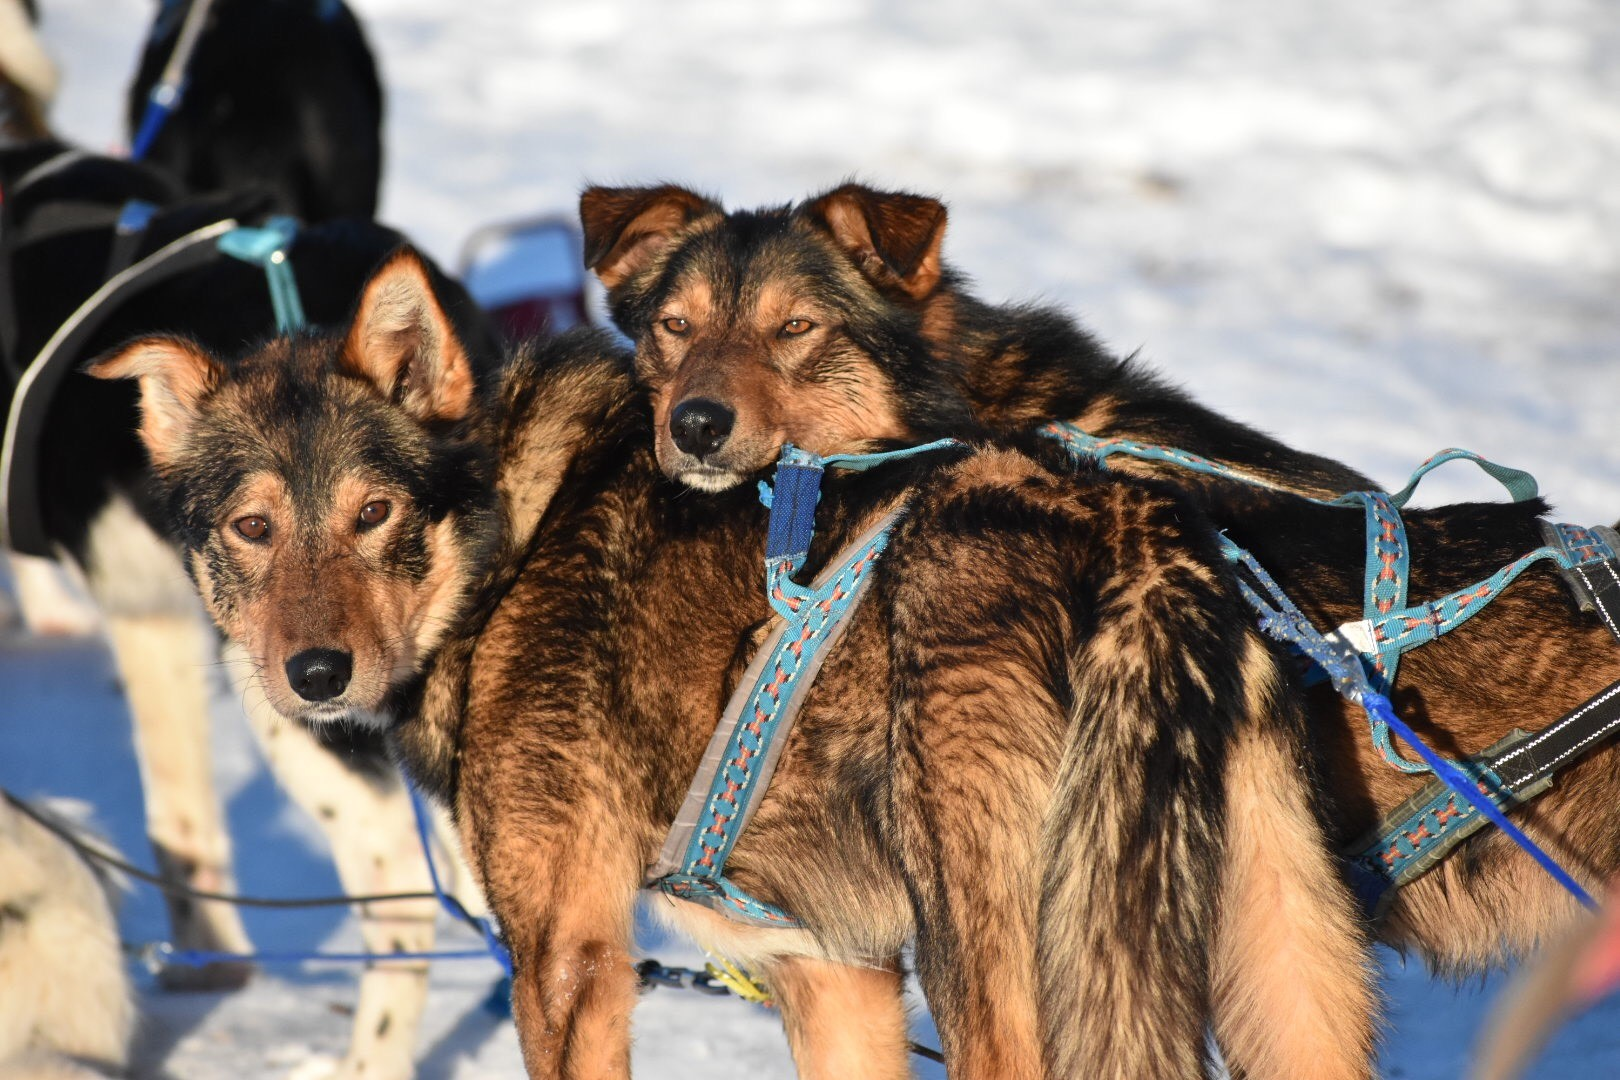 Picture of dogs dogsledding.